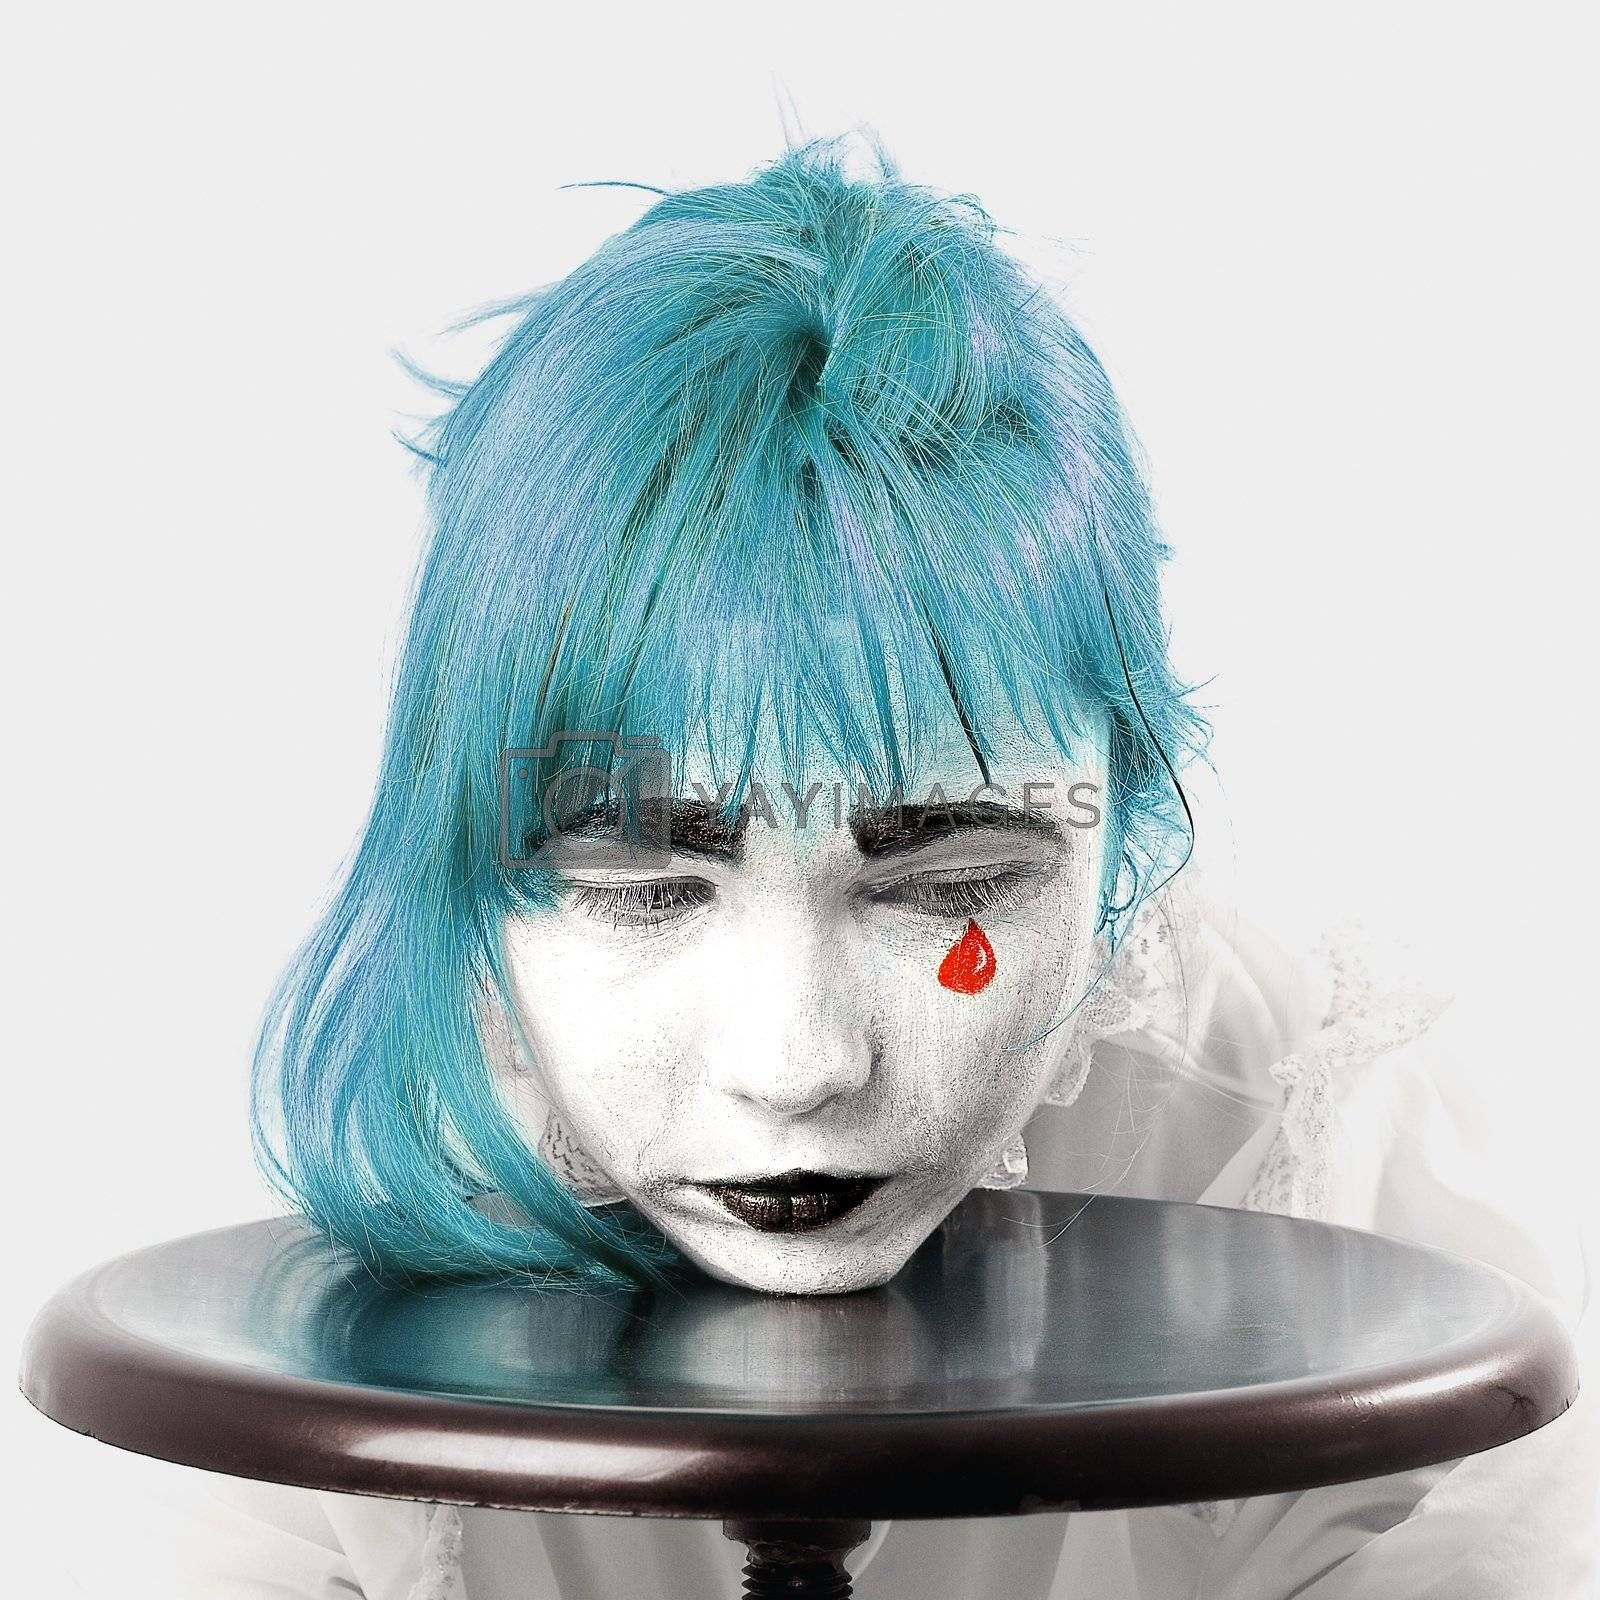 clown makeup girl with blue hair and red tear